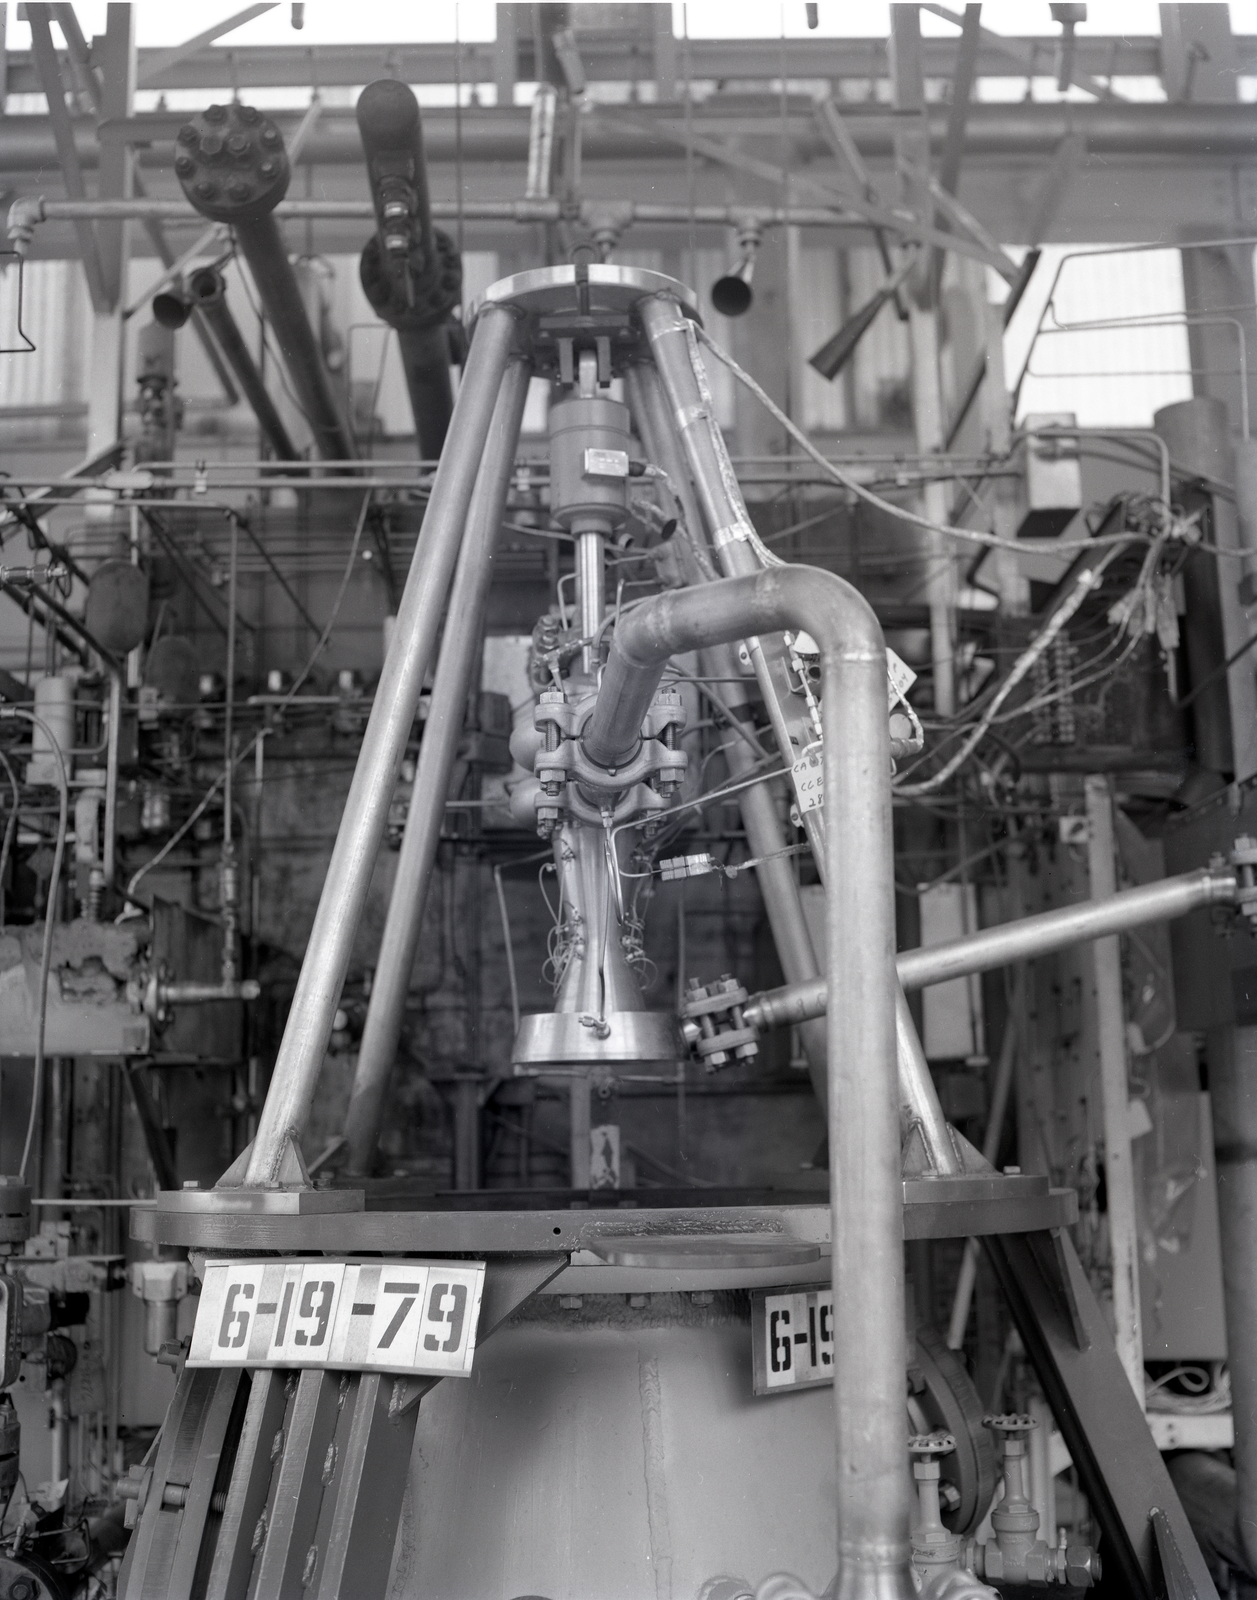 HIGH PRESSURE LOX LIQUID OXYGEN COOLED ENGINE ASSEMBLY IN THE ROCKET ENGINE TEST FACILITY RETF